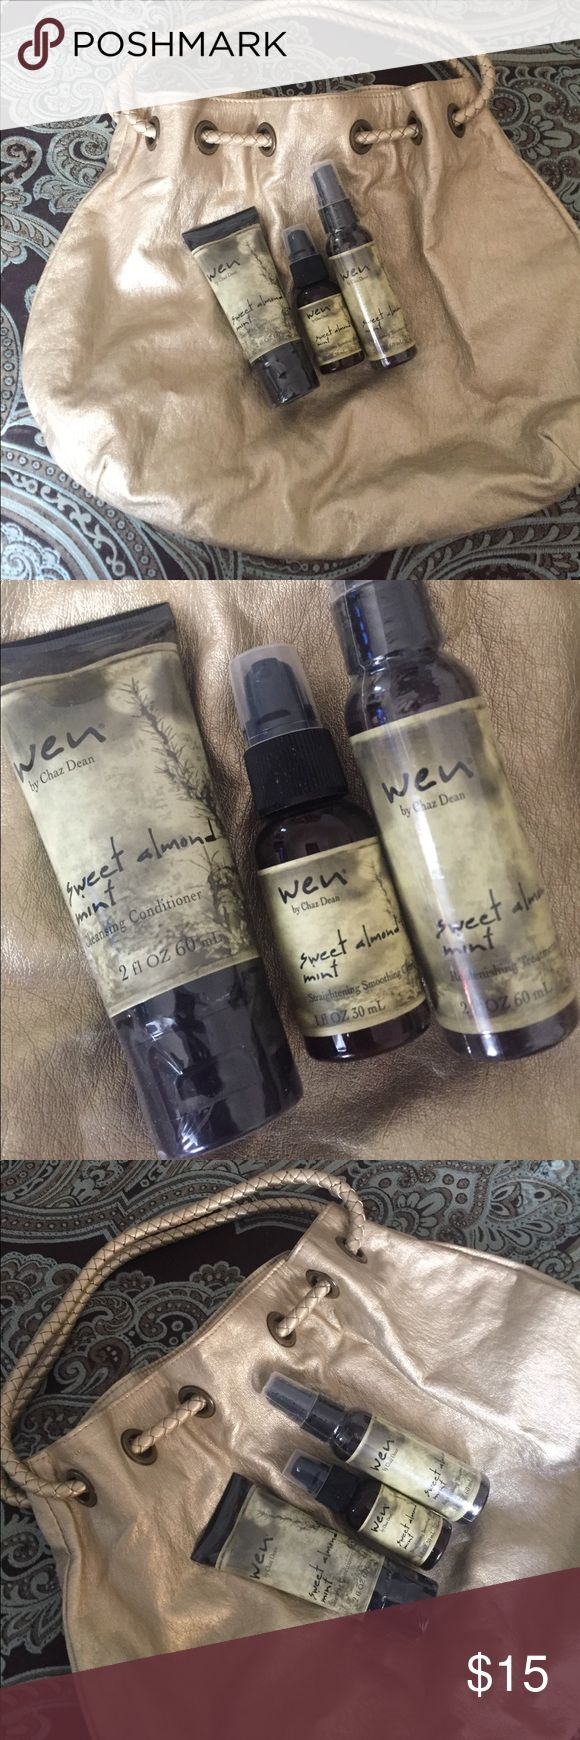 Wen Hair Care and Bag WEN Hair Care and Bag. Unused Wen Cleansing Conditioner 2oz, Replenishing Treatment 2oz, Smoothing Gloss 1oz. Cute gold metallic drawstring bag included. WEN Makeup